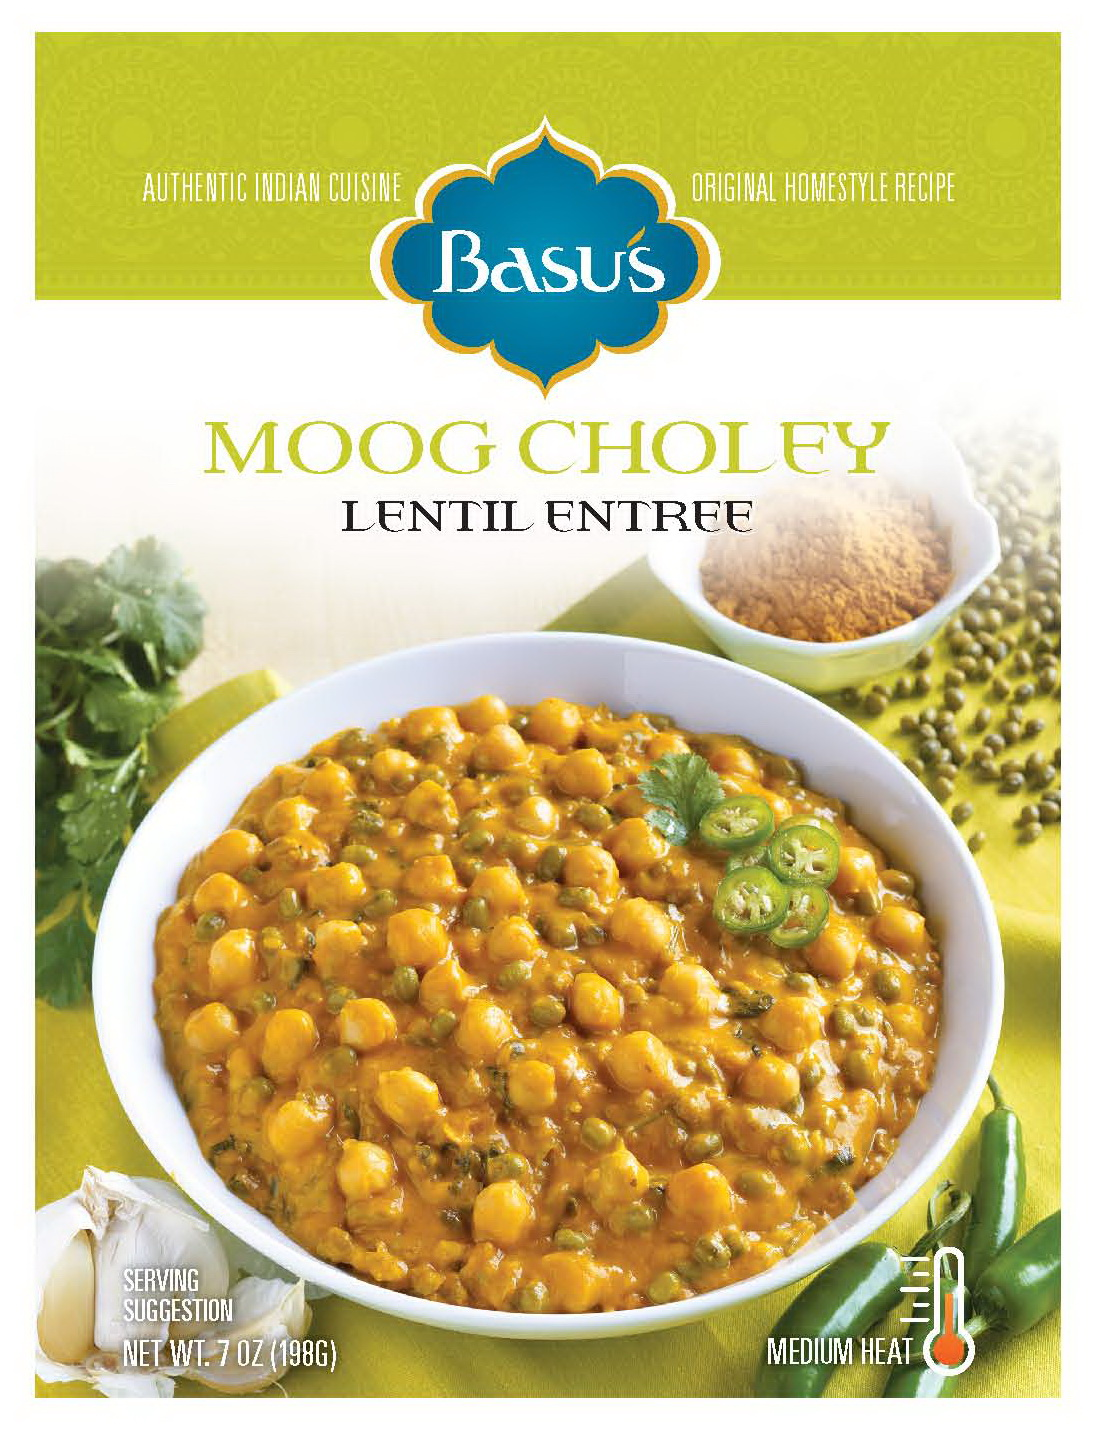 Moog Choley Lentil Entree